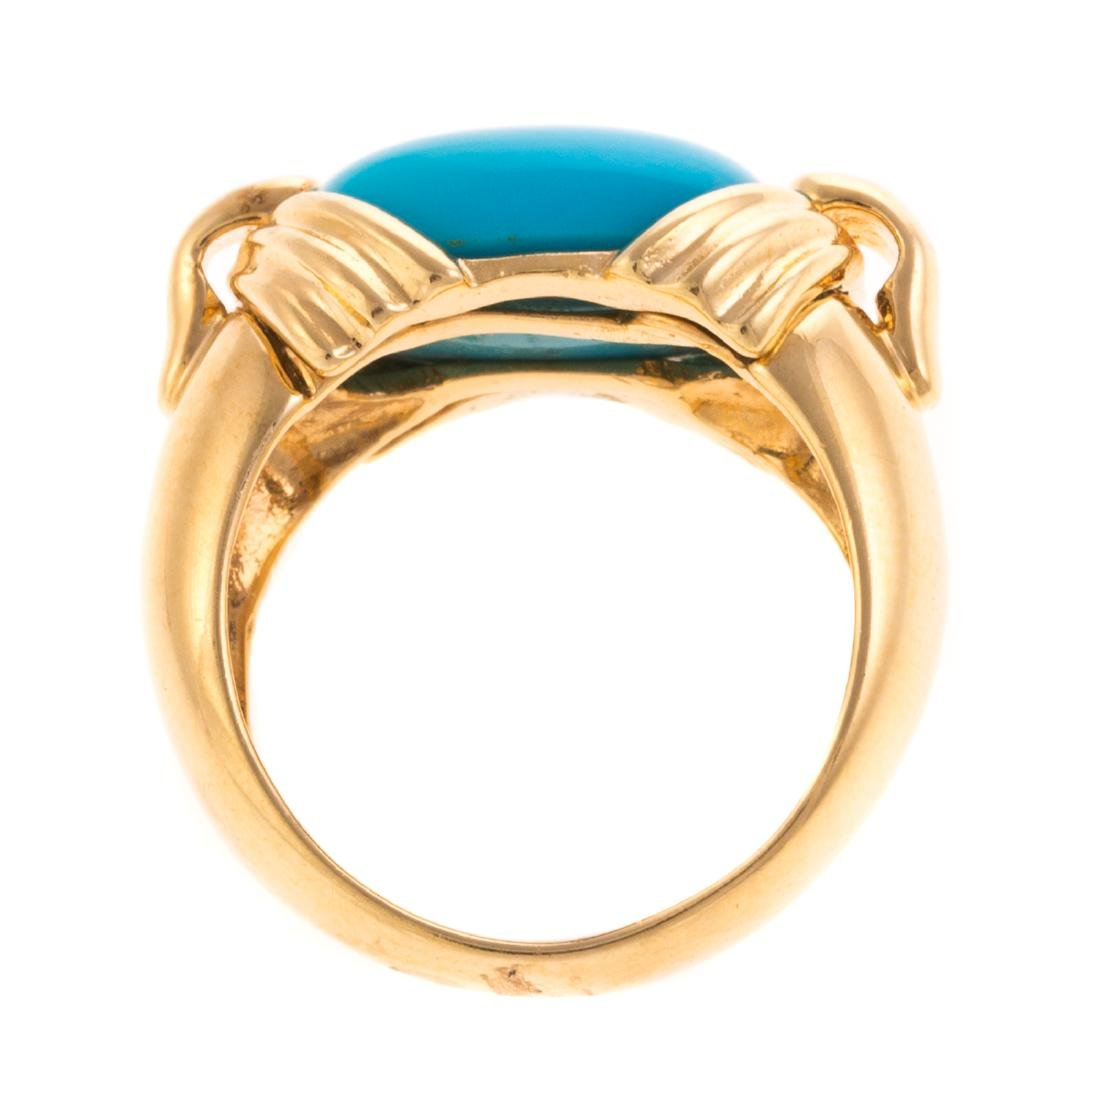 A Lady's Sleeping Beauty Turquoise Ring in 18K - 4